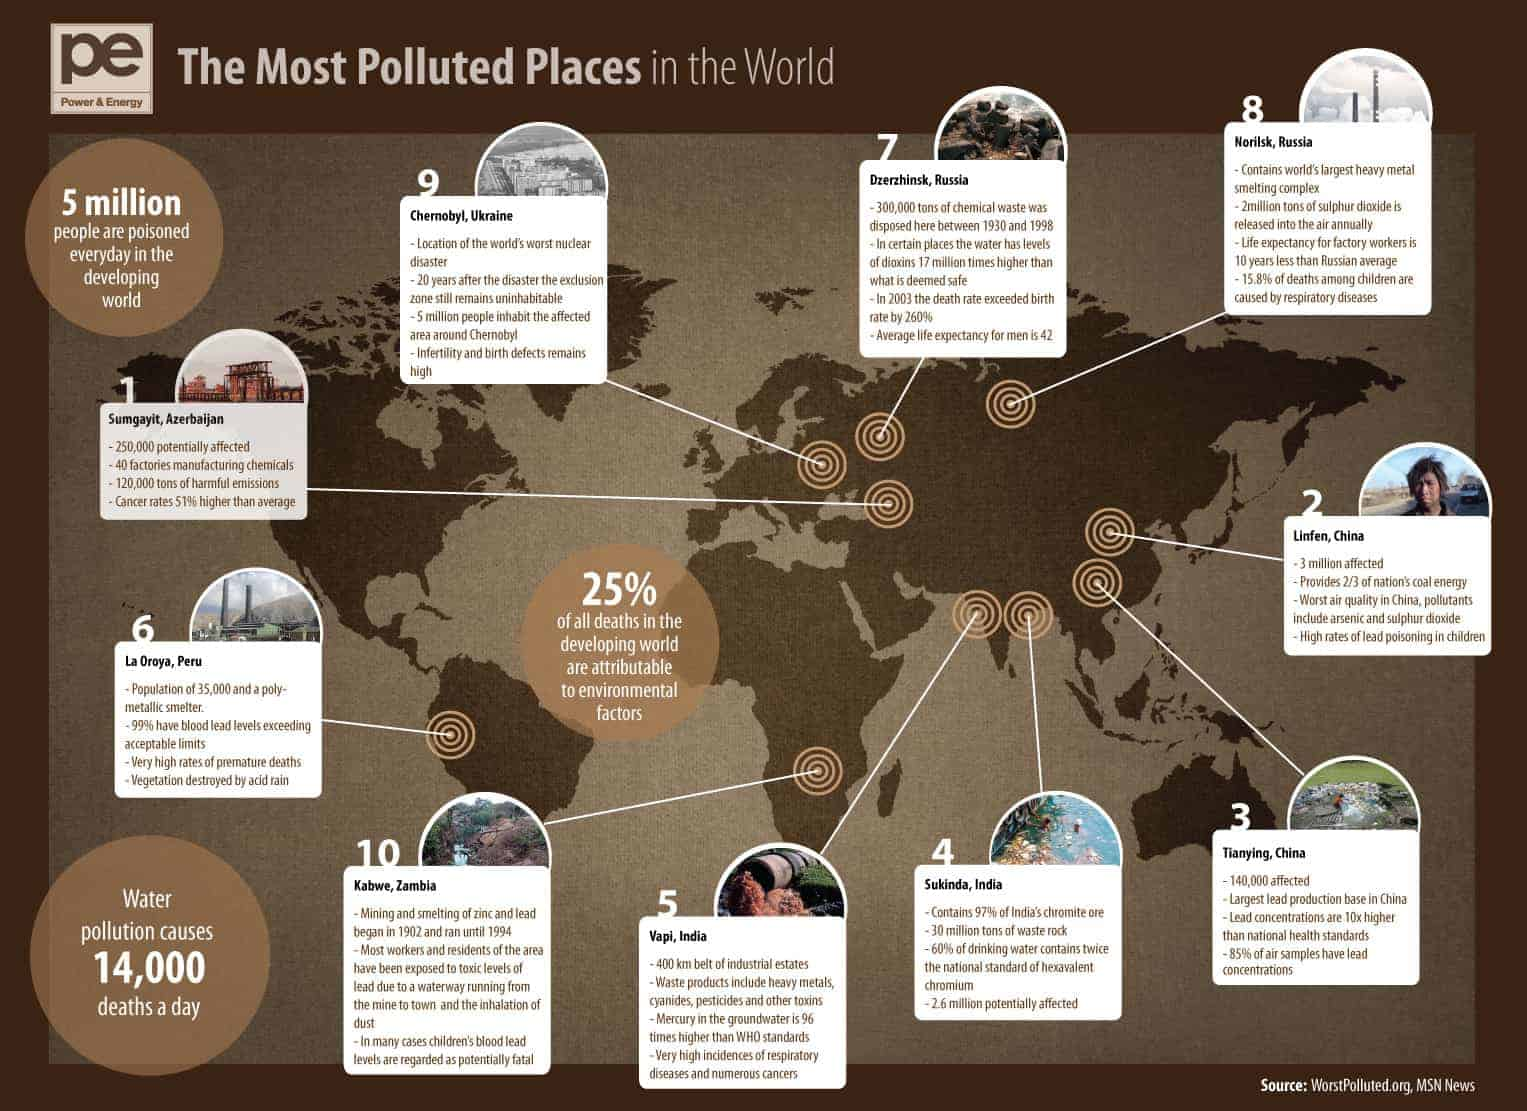 Worst Polluted